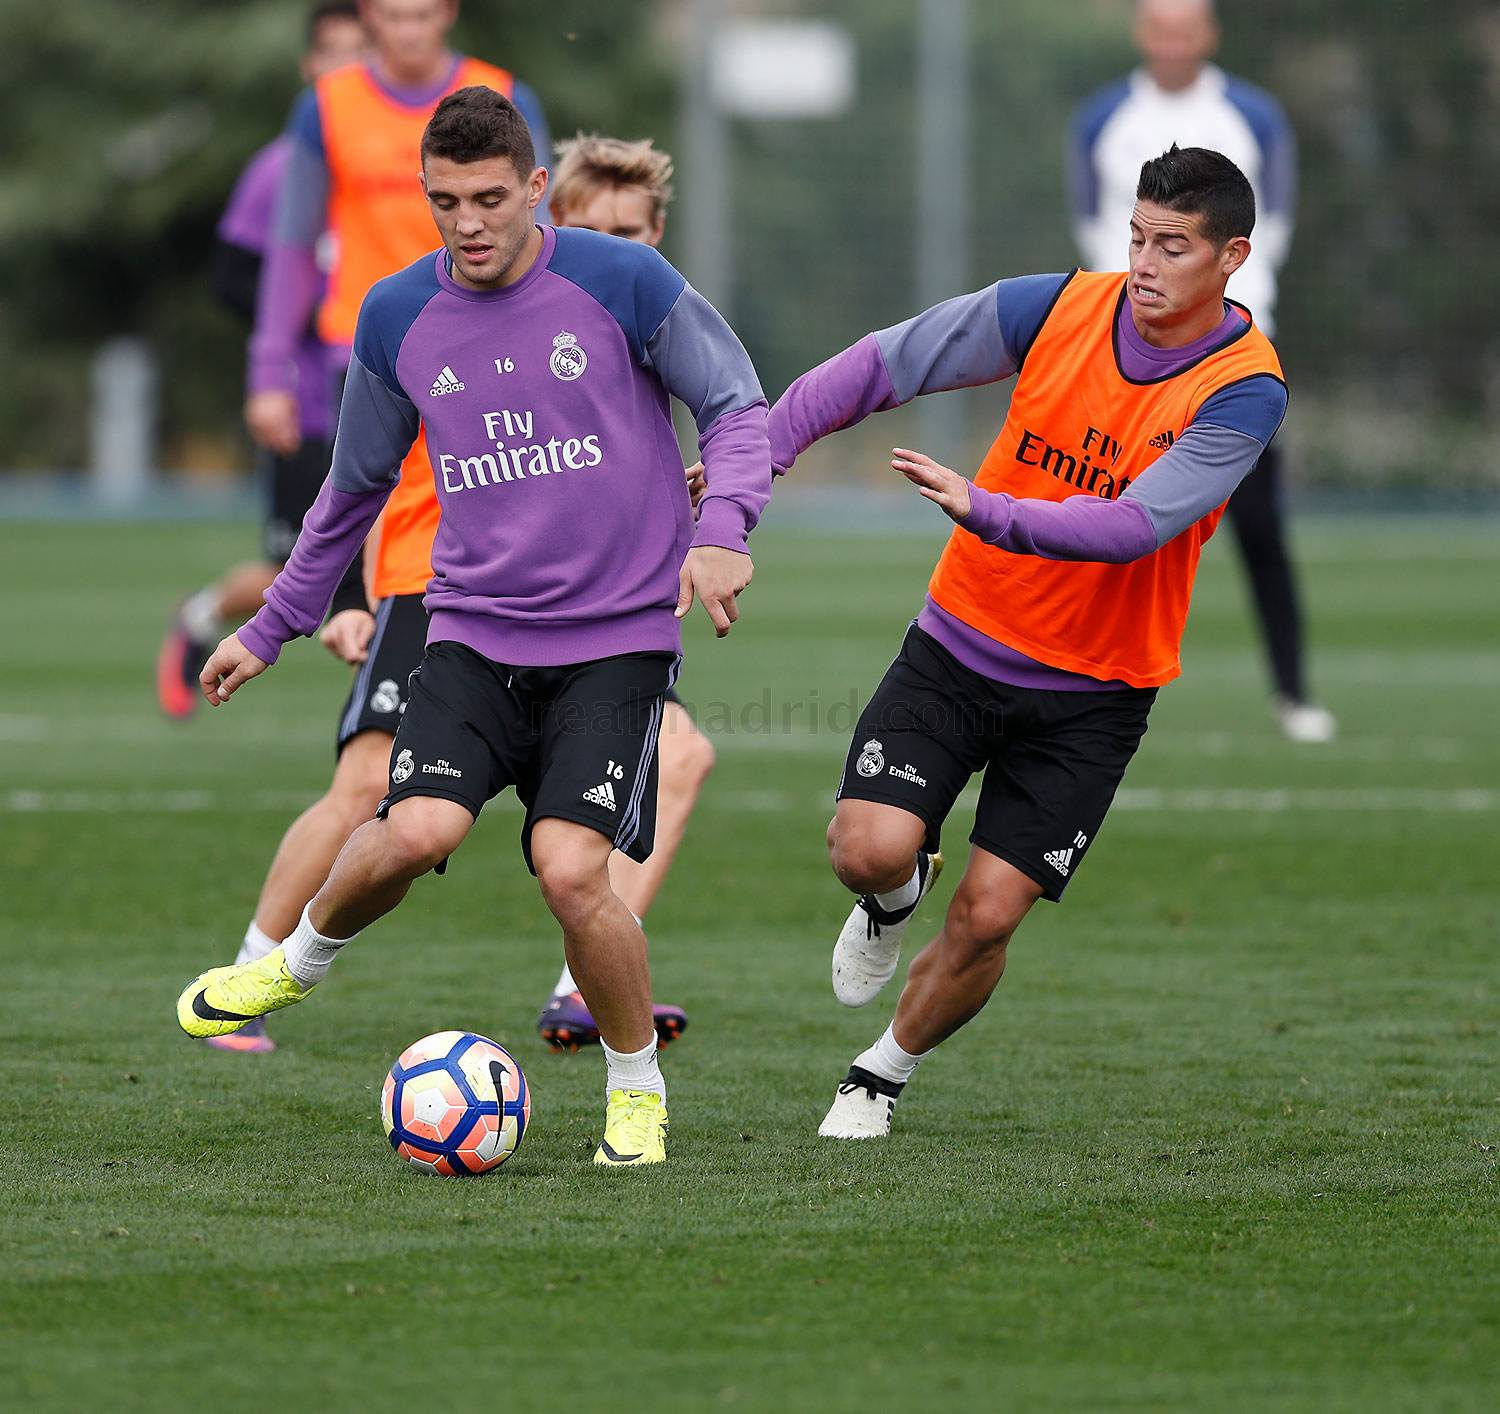 Real Madrid - Entrenamiento del Real Madrid - 20-10-2016